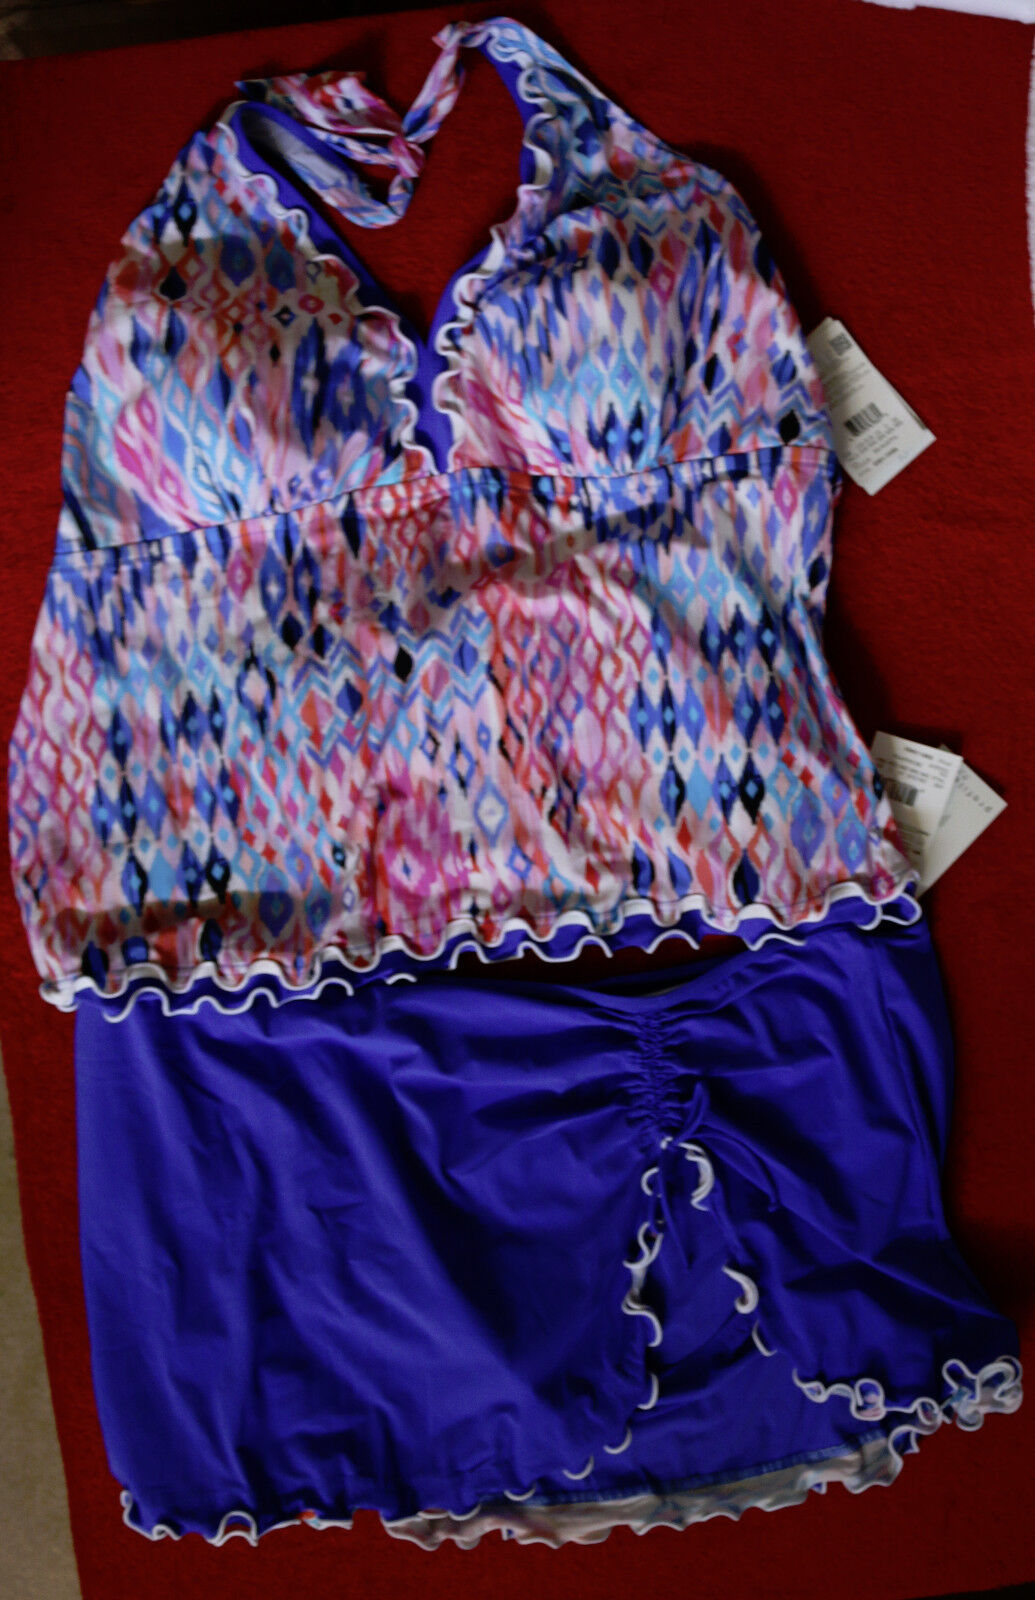 Profile Skirted Halter Tankini Set Size 24W with Skirted Btms